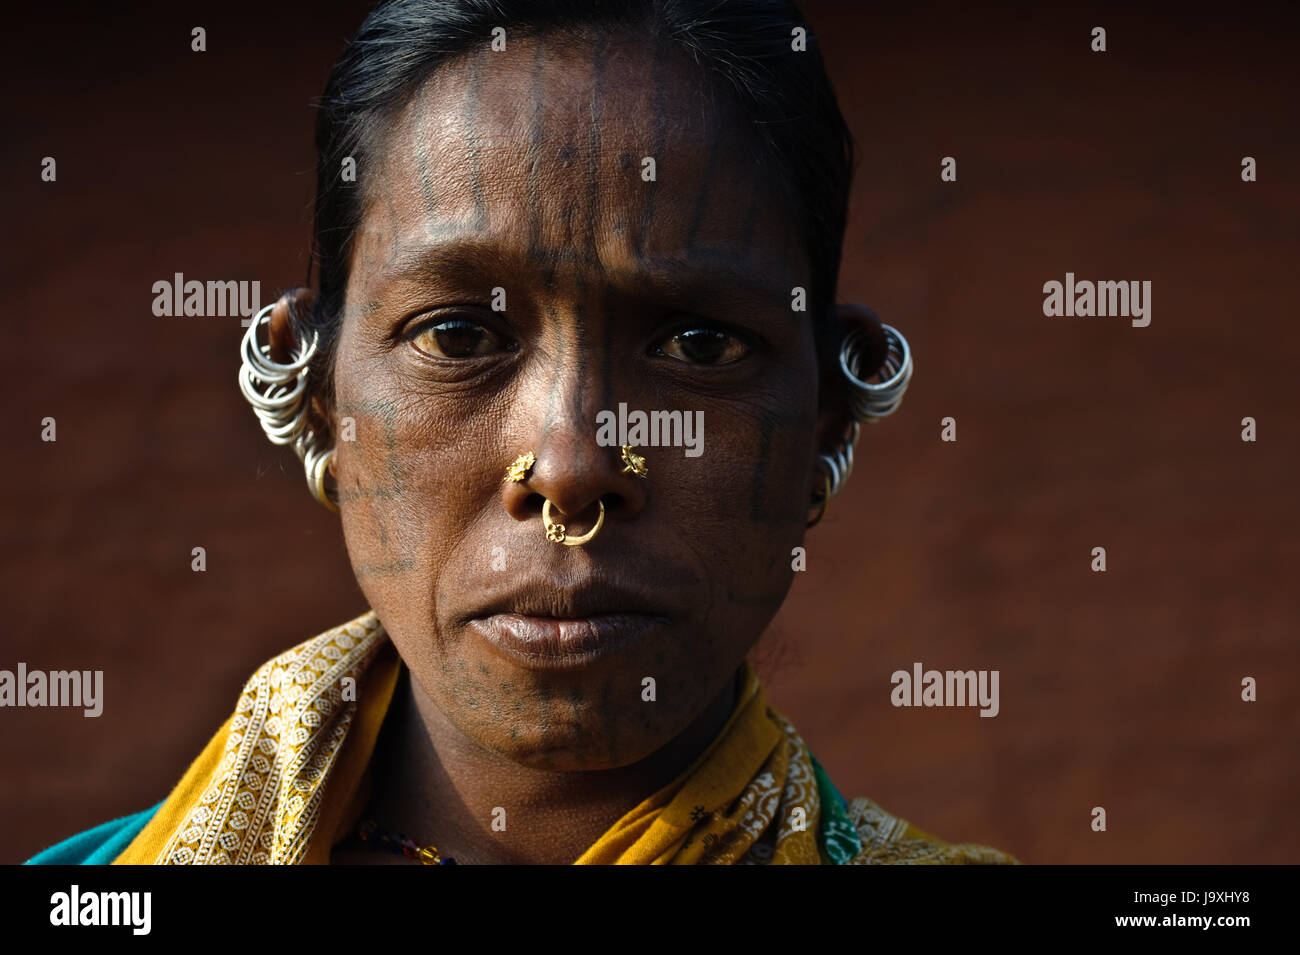 Woman from the Kutia Kondh tribe ( India) - Stock Image